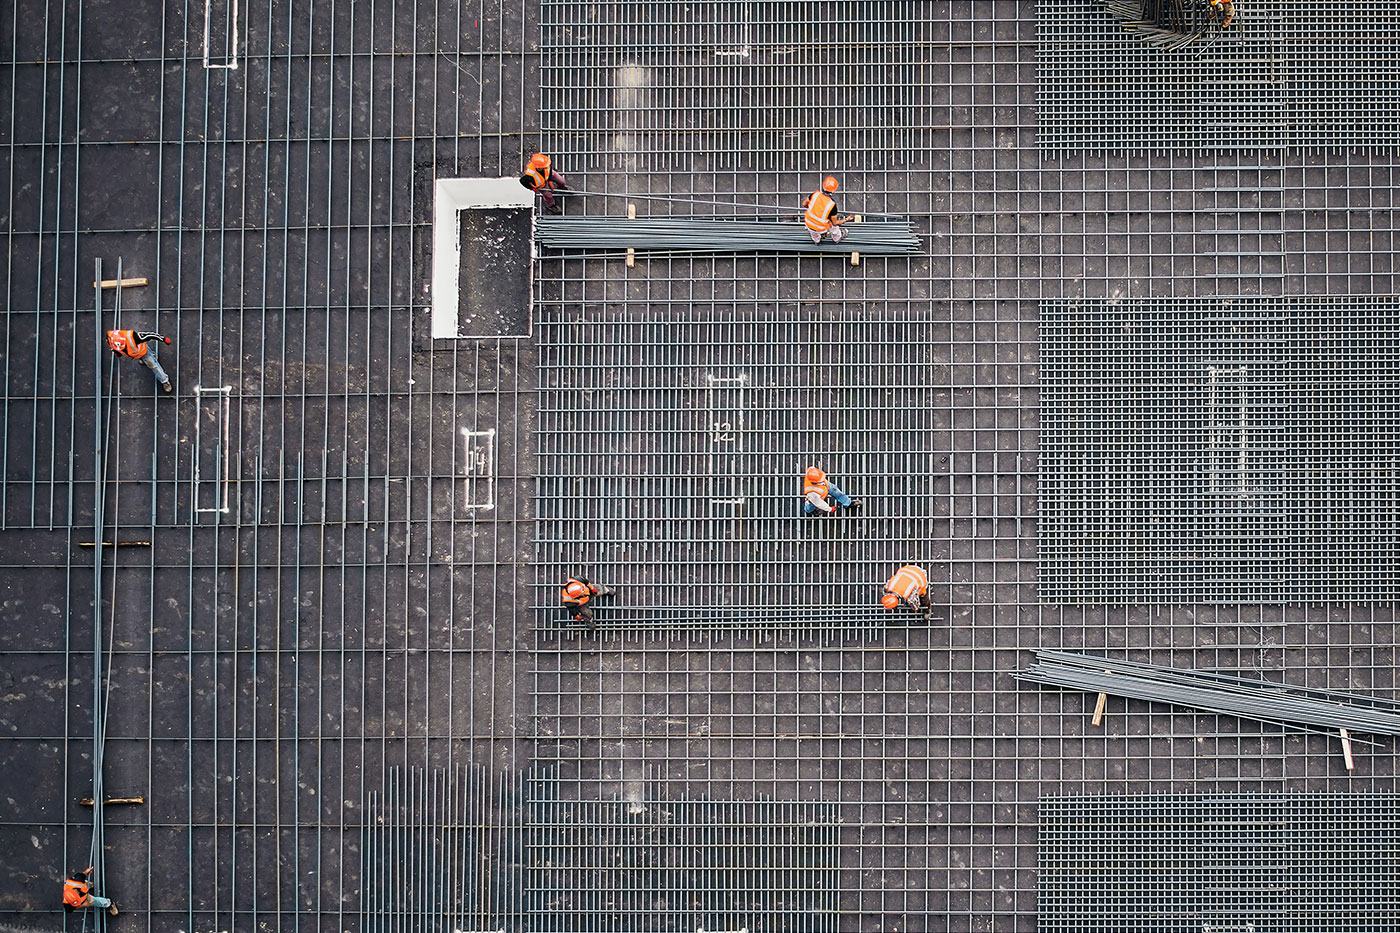 Unemployment in Construction Industry Tops